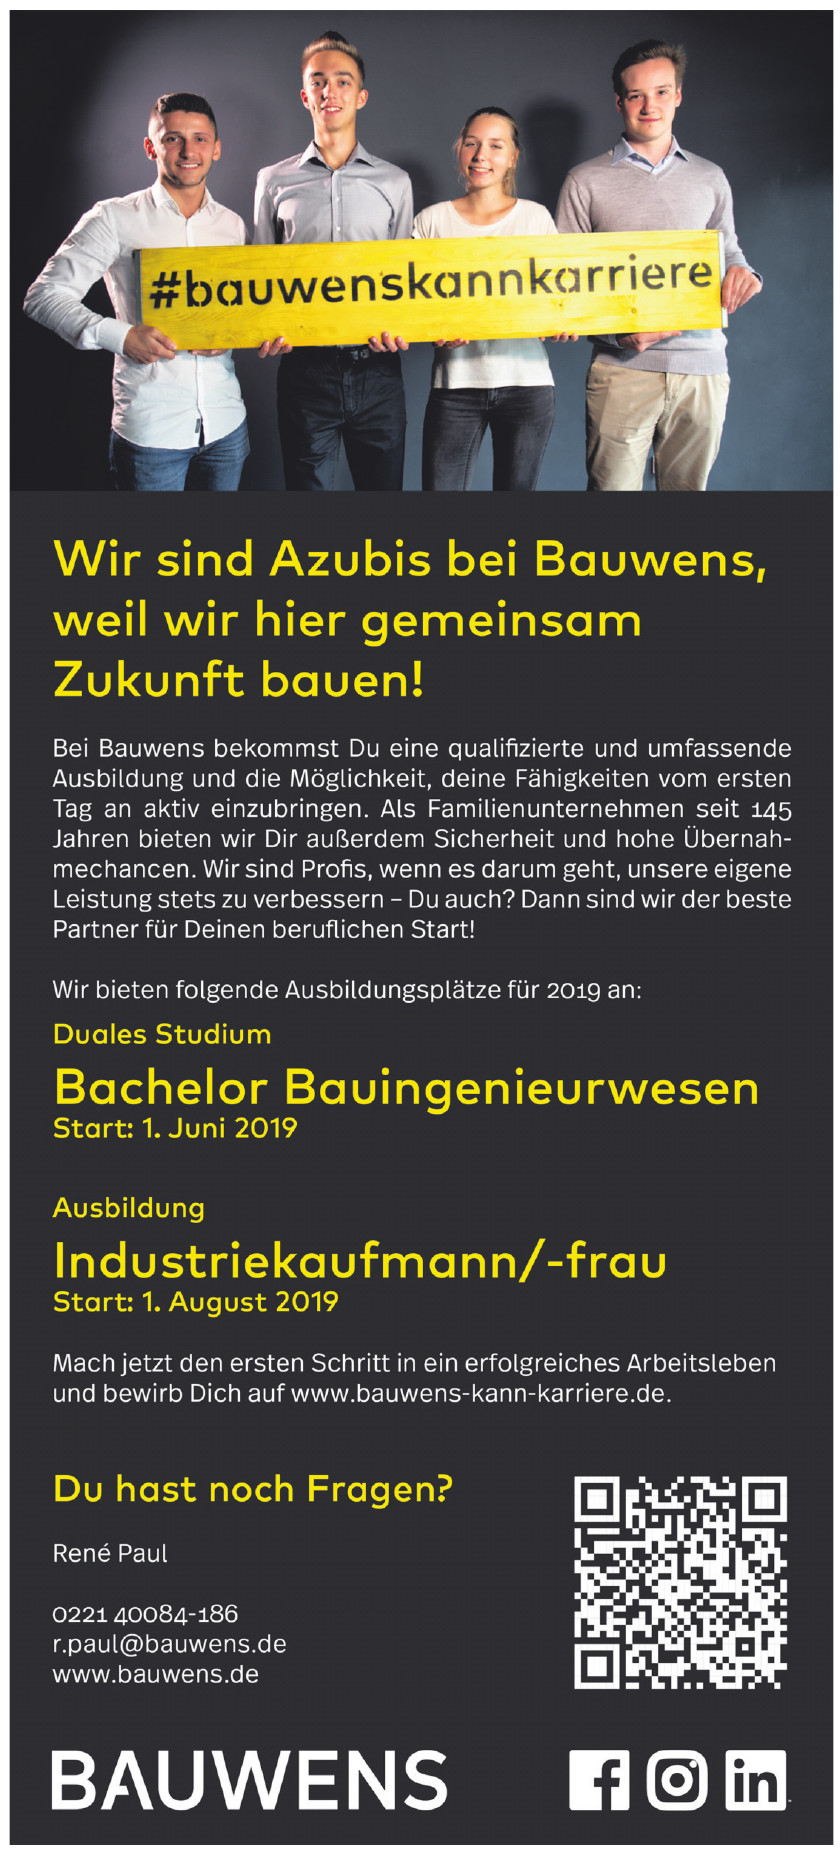 BAUWENS GmbH & Co. KG